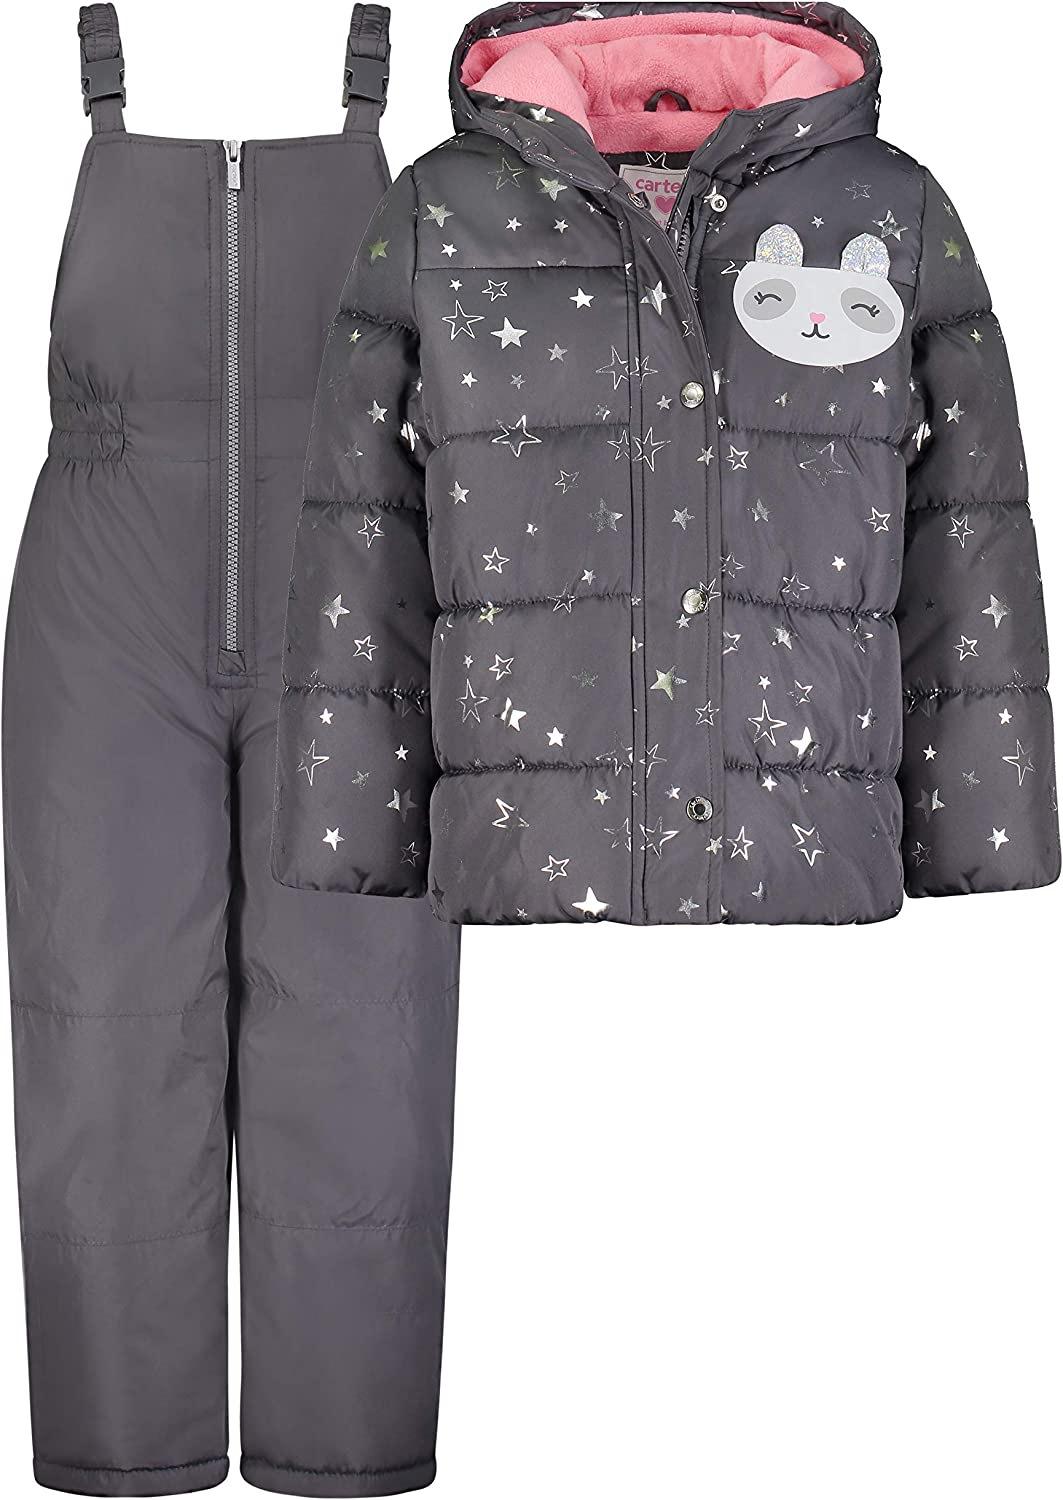 Grey//Silver Stars 18MO Carters Baby Girls 2-Piece Heavyweight Printed Snowsuit